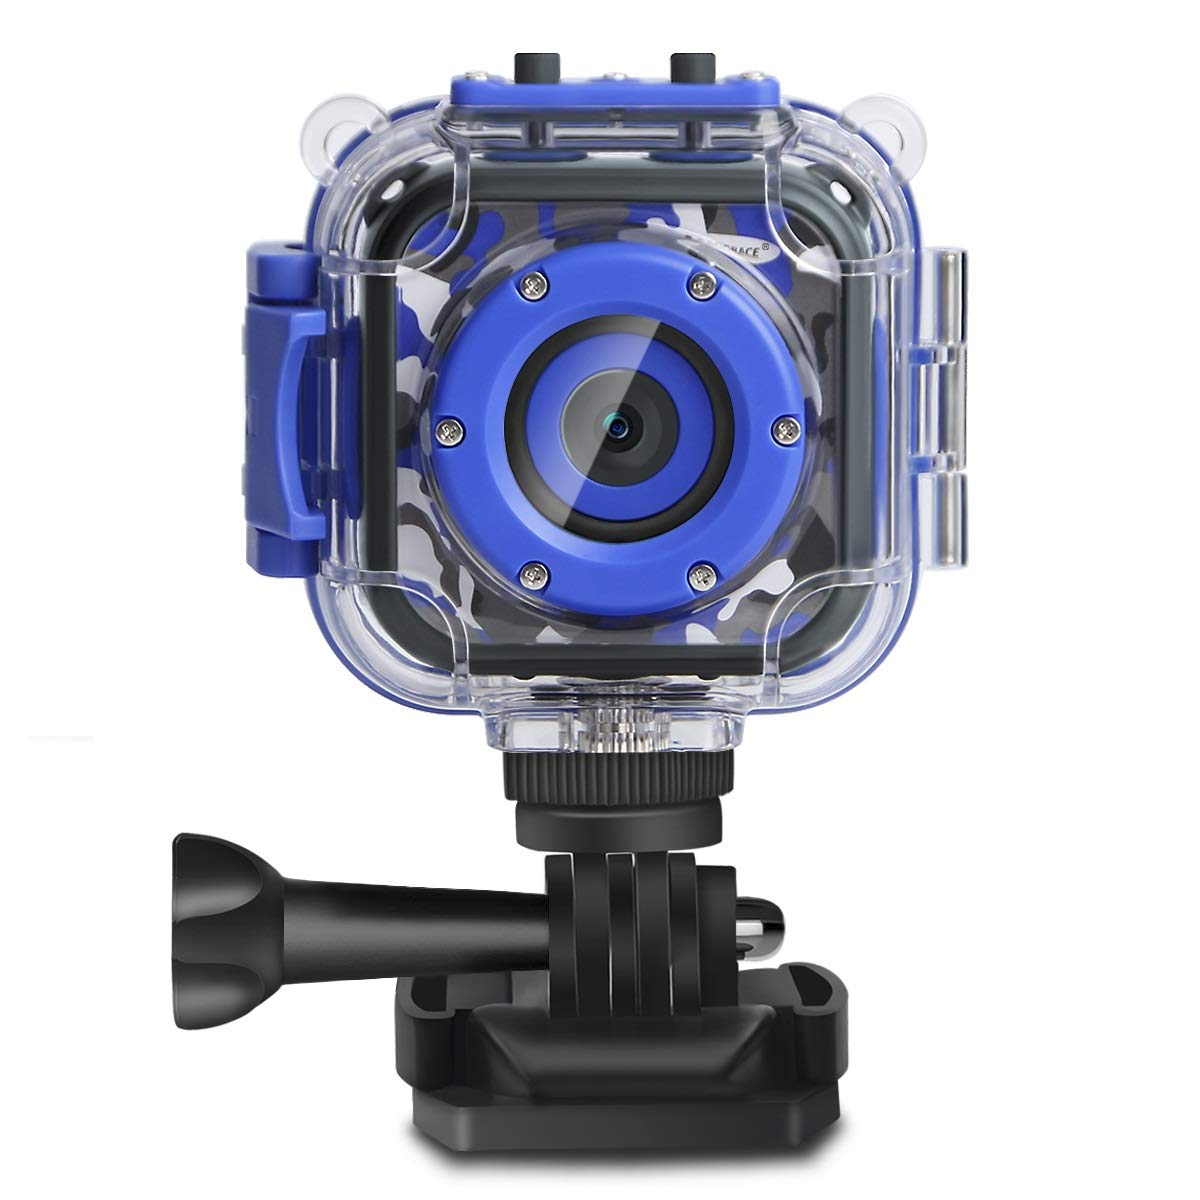 PROGRACE Children Kids Camera Waterproof Digital Video HD Action Camera 1080P Sports Camera Camcorder DV for Boys Birthday Learn Camera Toy 1.77'' LCD Screen (Navy Blue) by PROGRACE